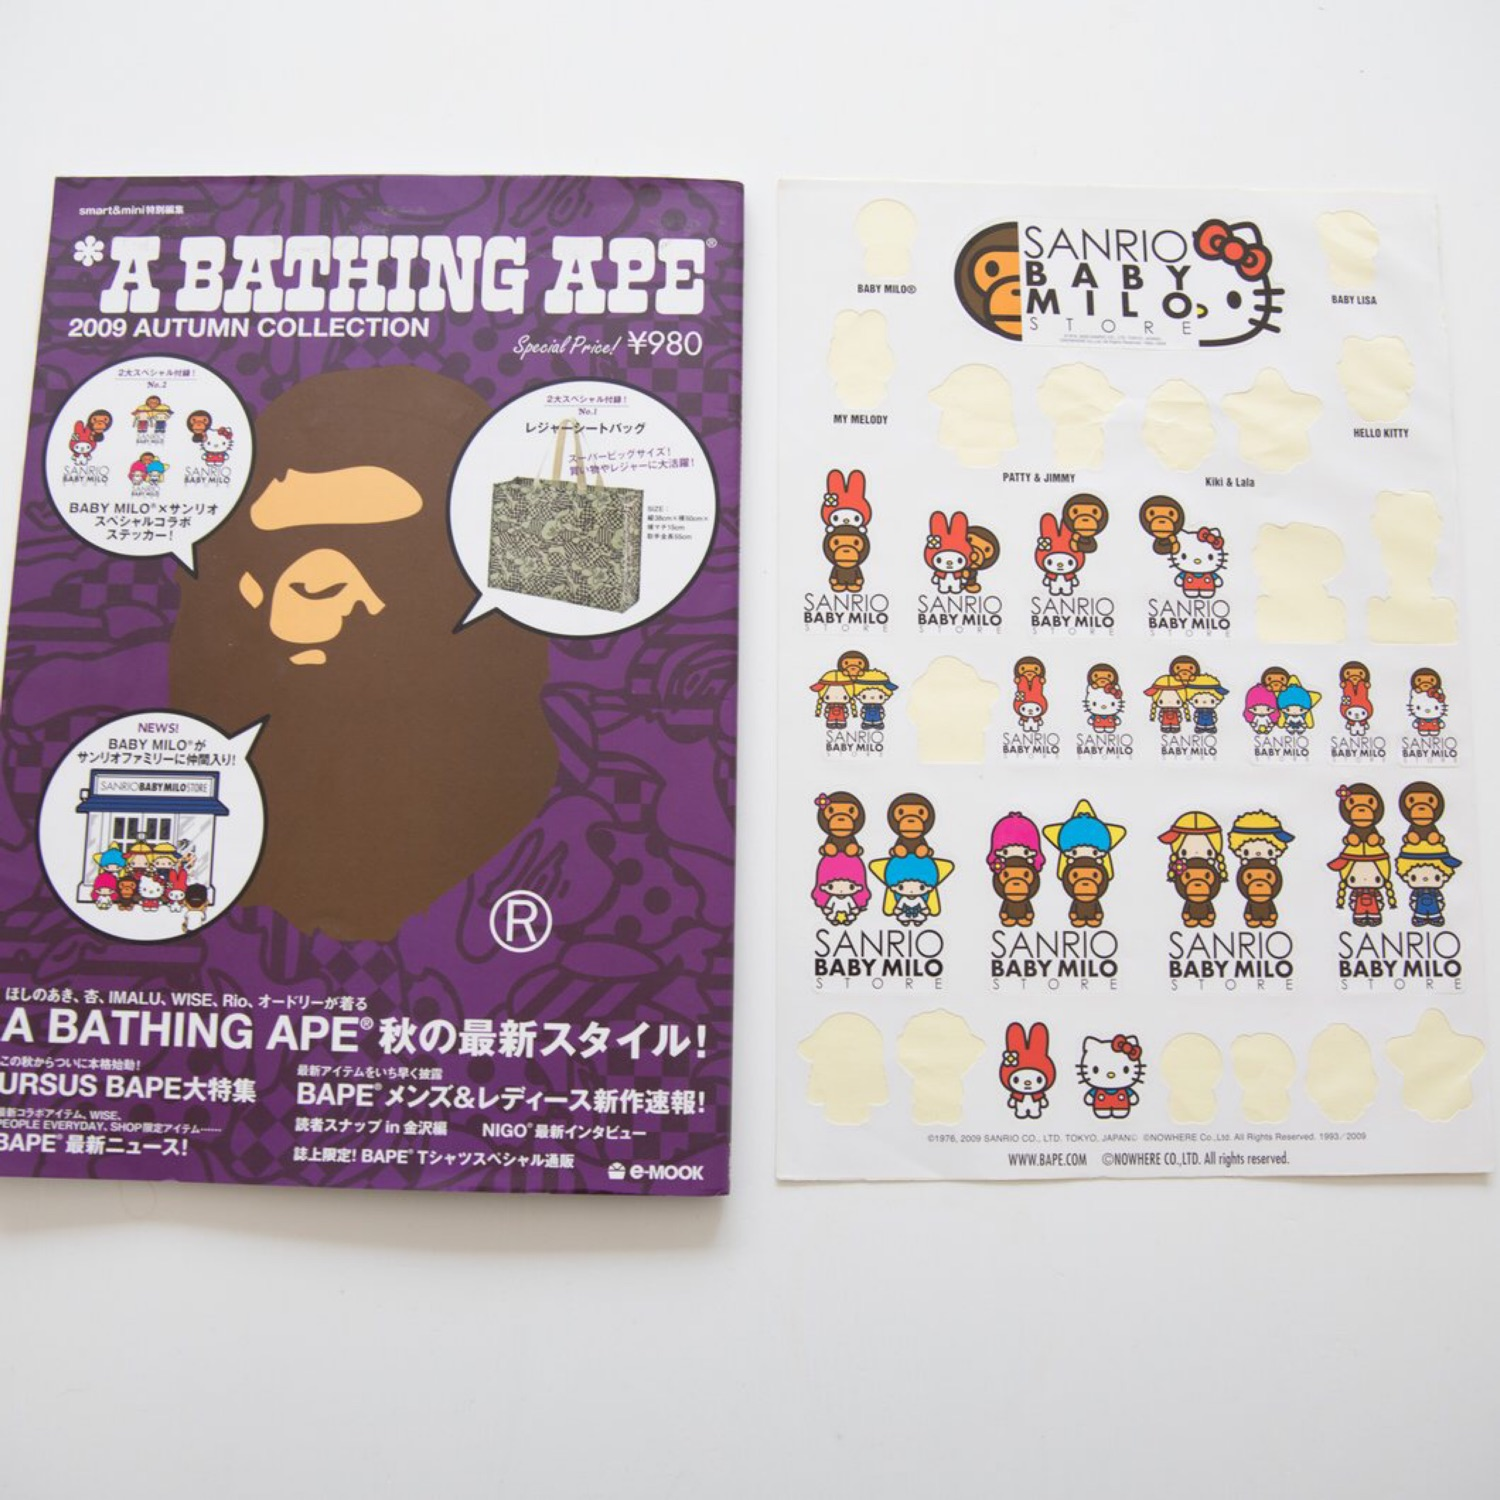 Bape Autumn 2009 Collection Magazine Sticker Sheet